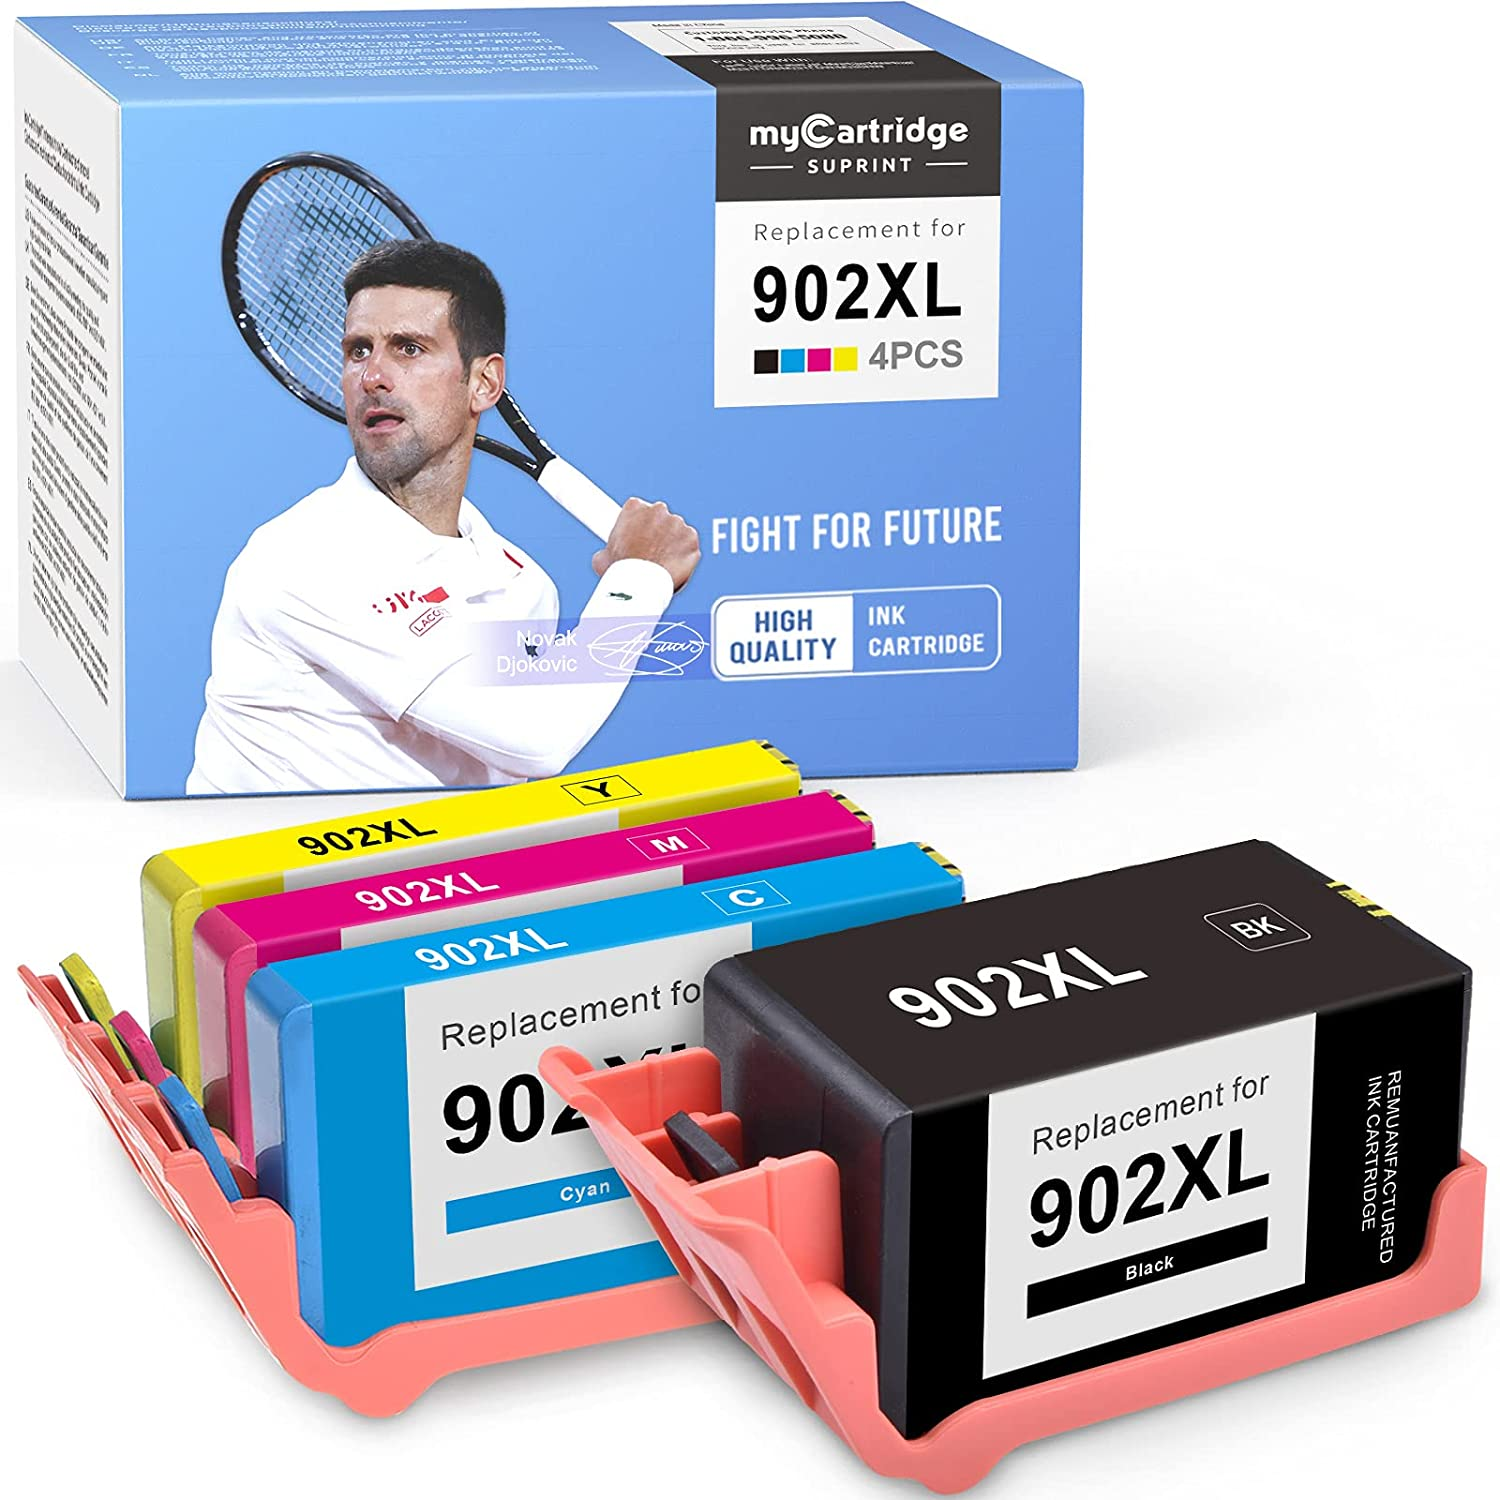 myCartridge SUPRINT Remanufactured Ink Cartridge Replacement for HP 902 XL 902XL use with OfficeJet Pro 6960 6968 6958 6954 6975 6950 6970 6978 (Black Cyan Magenta Yellow, 4-Pack)